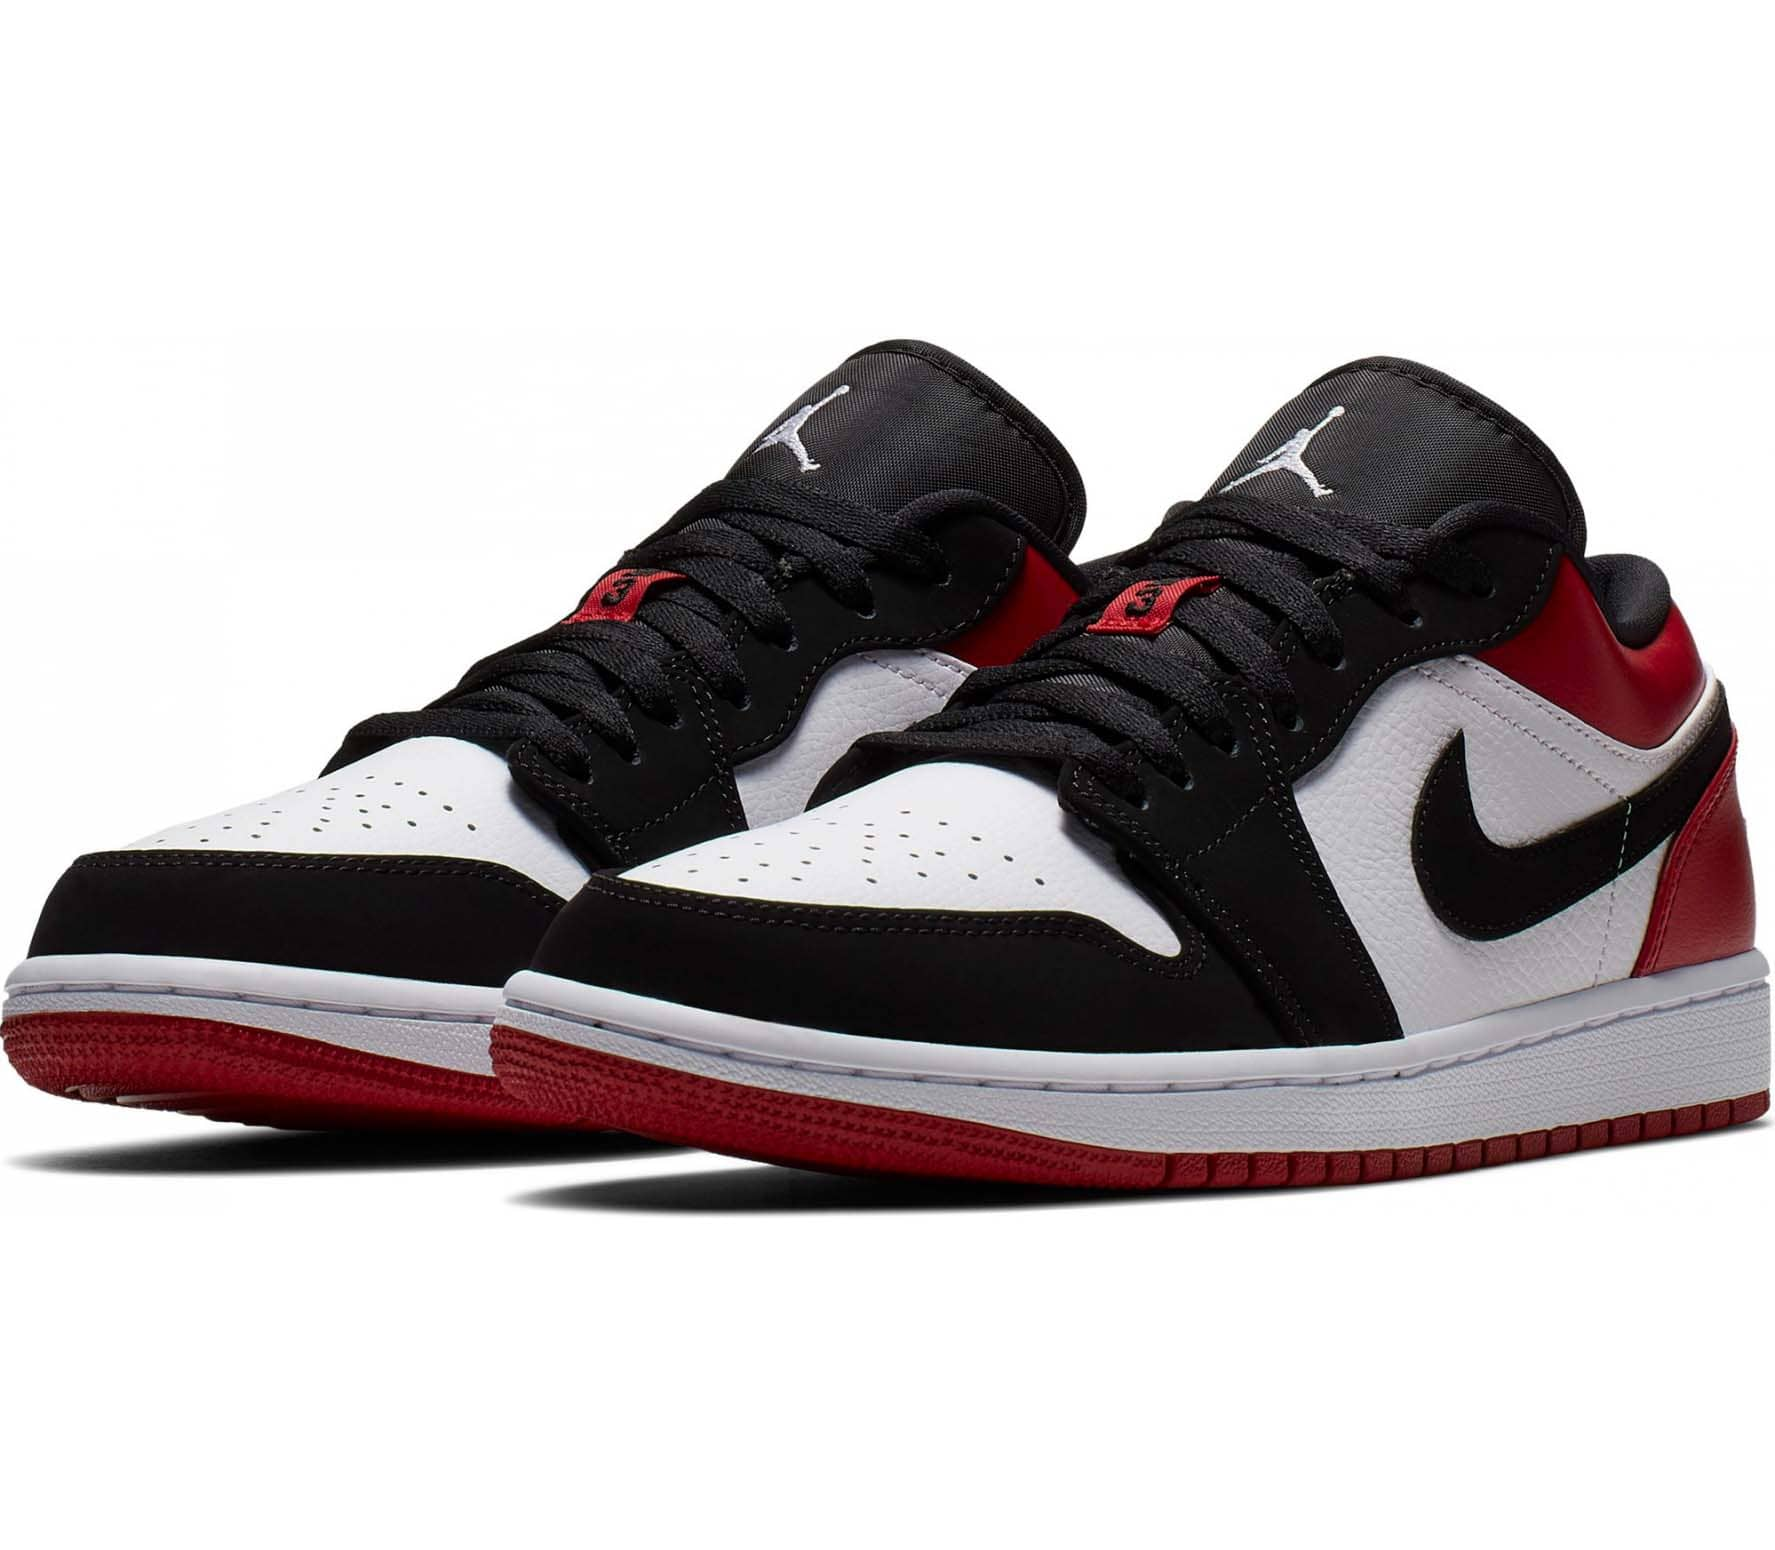 Air Jordan 1 Low Hommes Baskets